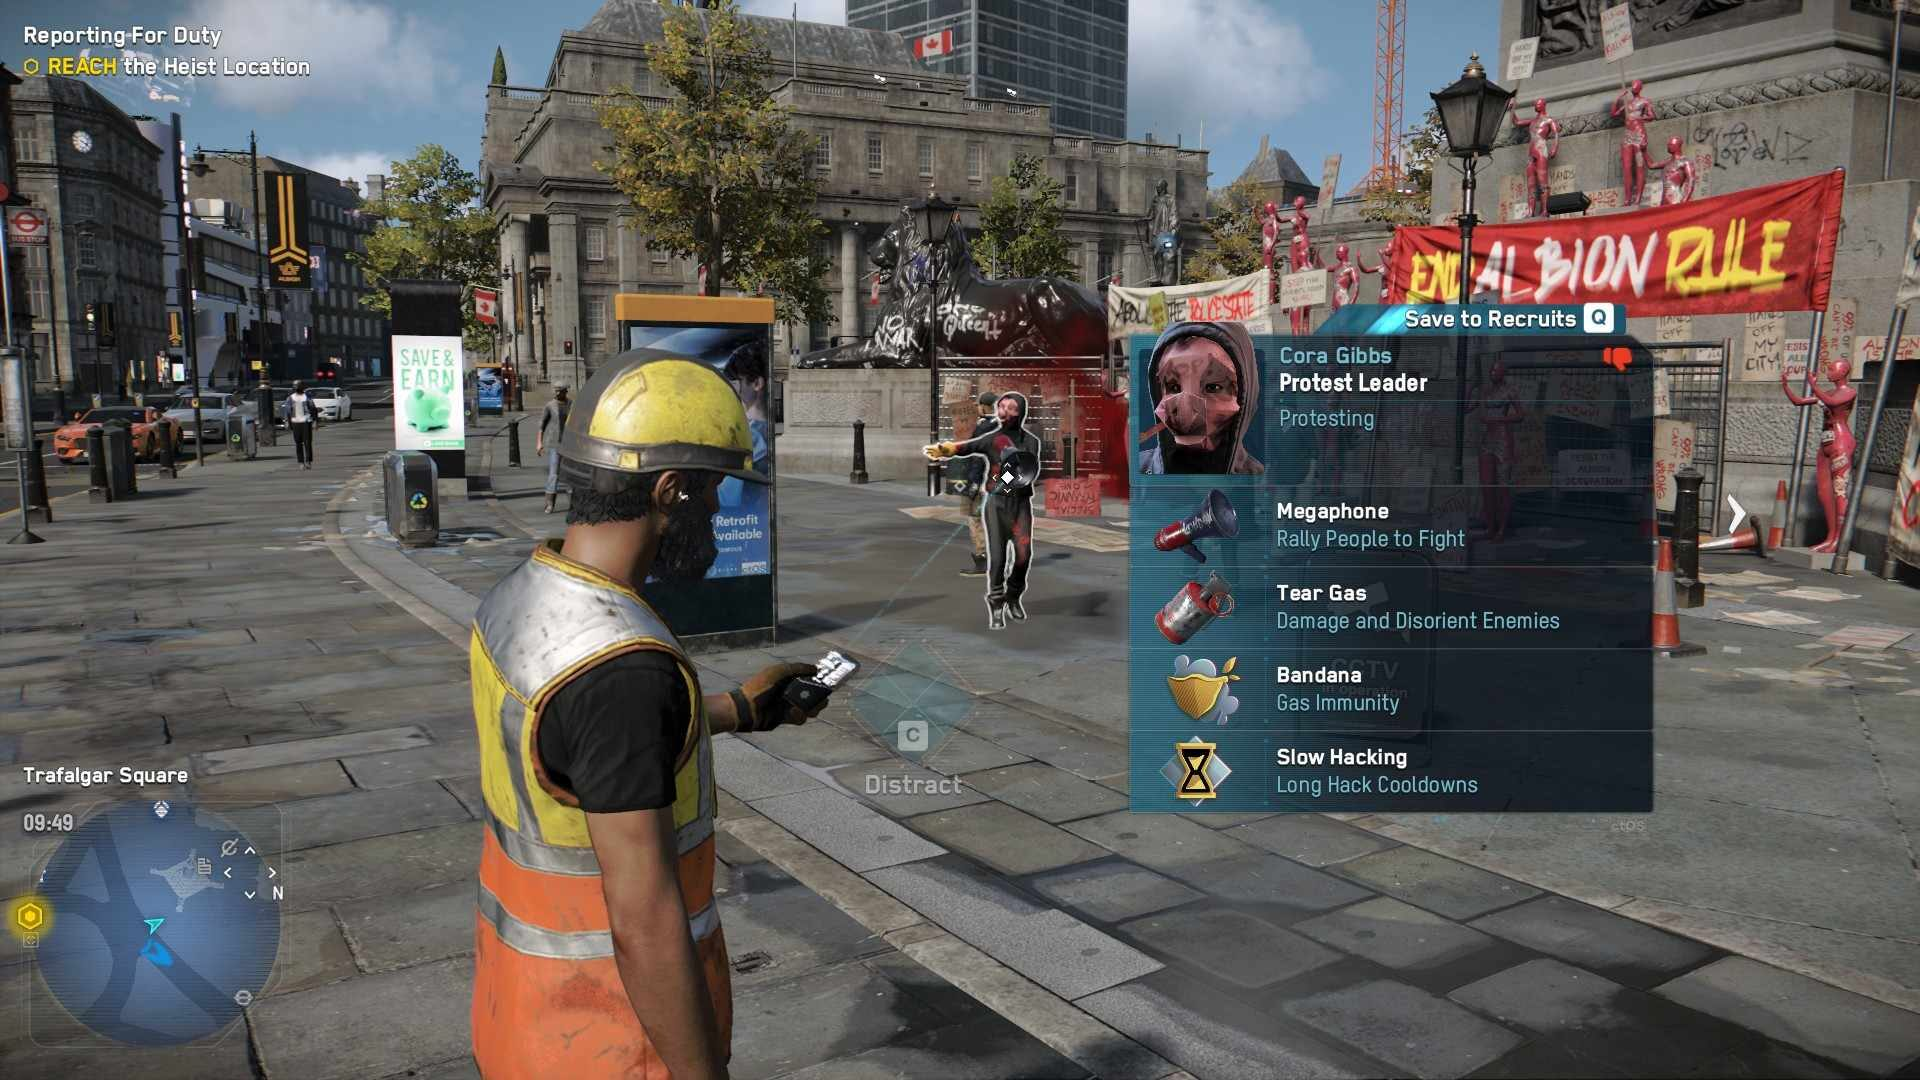 Watch Dogs: Legion Hacker opens the profile of a protest leader in Trafalgar Square